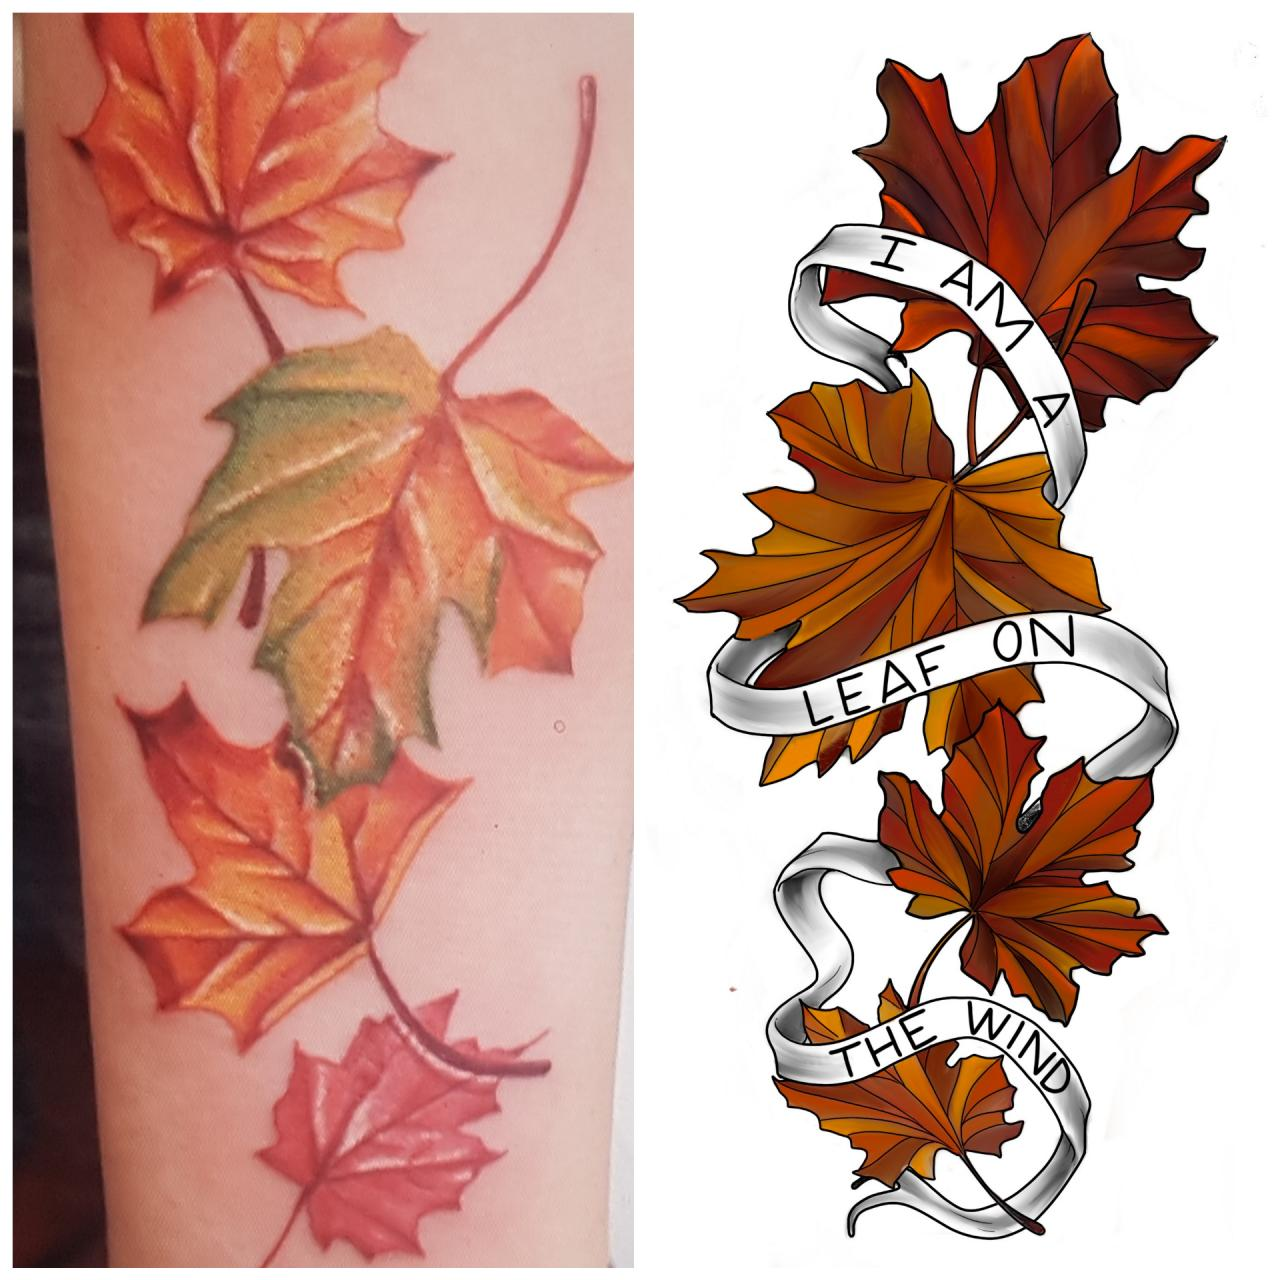 I'm getting my forearm tattoo done tomorrow. Wondering if what I want to ask is a faux pas that will piss her off. Full situation in comments.